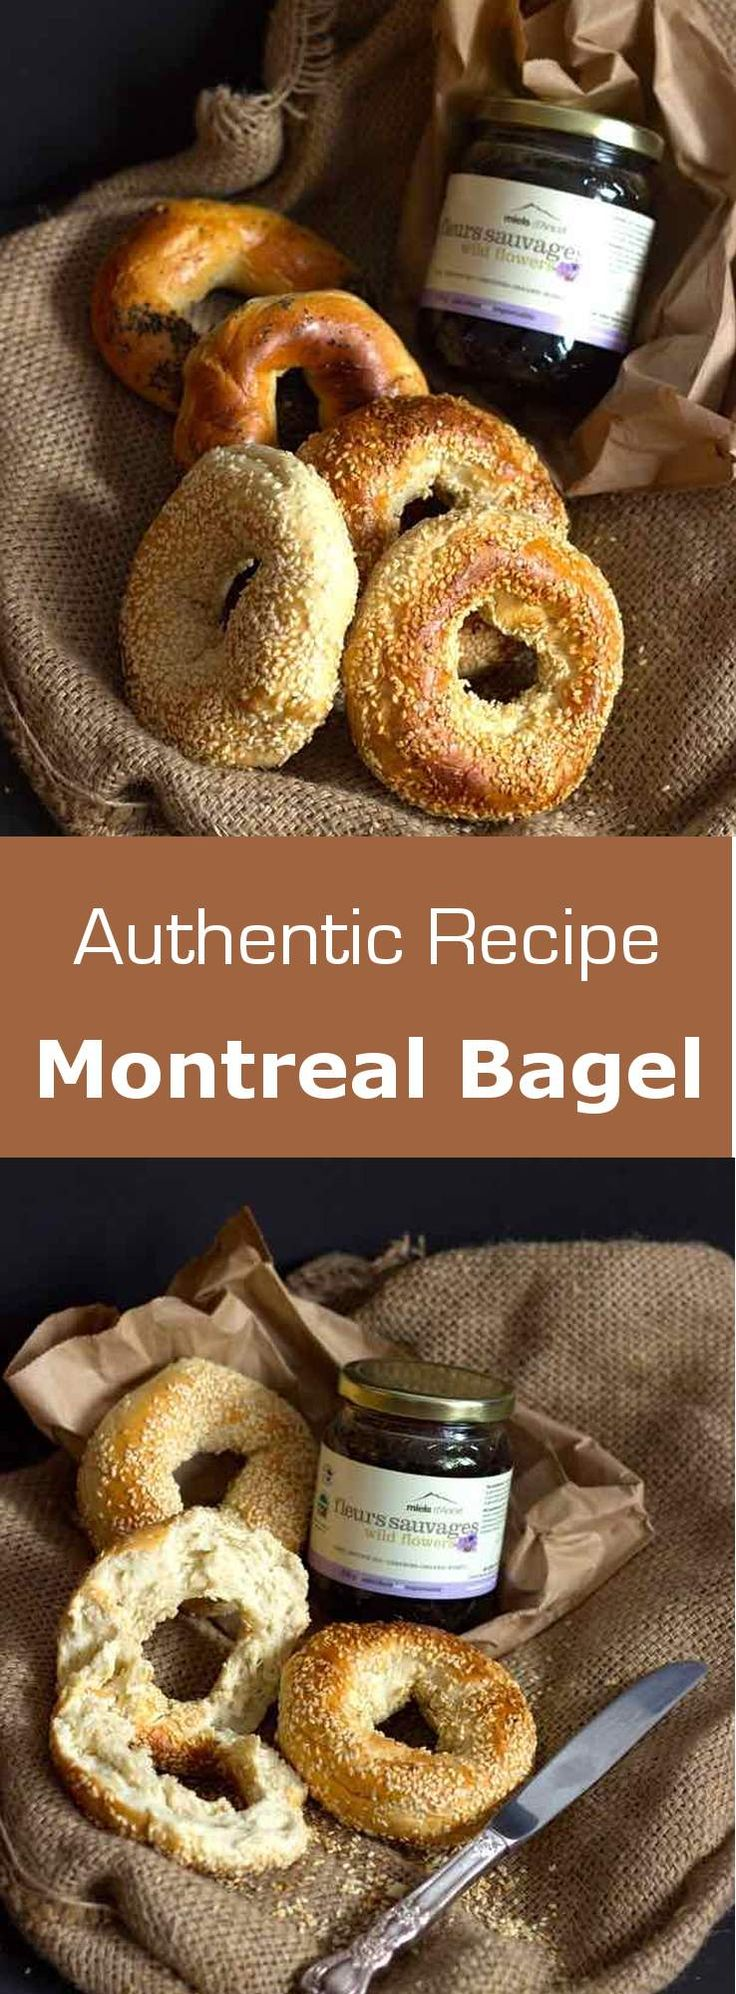 The Montreal bagel is a variant of the New York bagel with a more chewy and dense texture, as well as a more pronounced sweet taste. #Canada #bread #196flavors